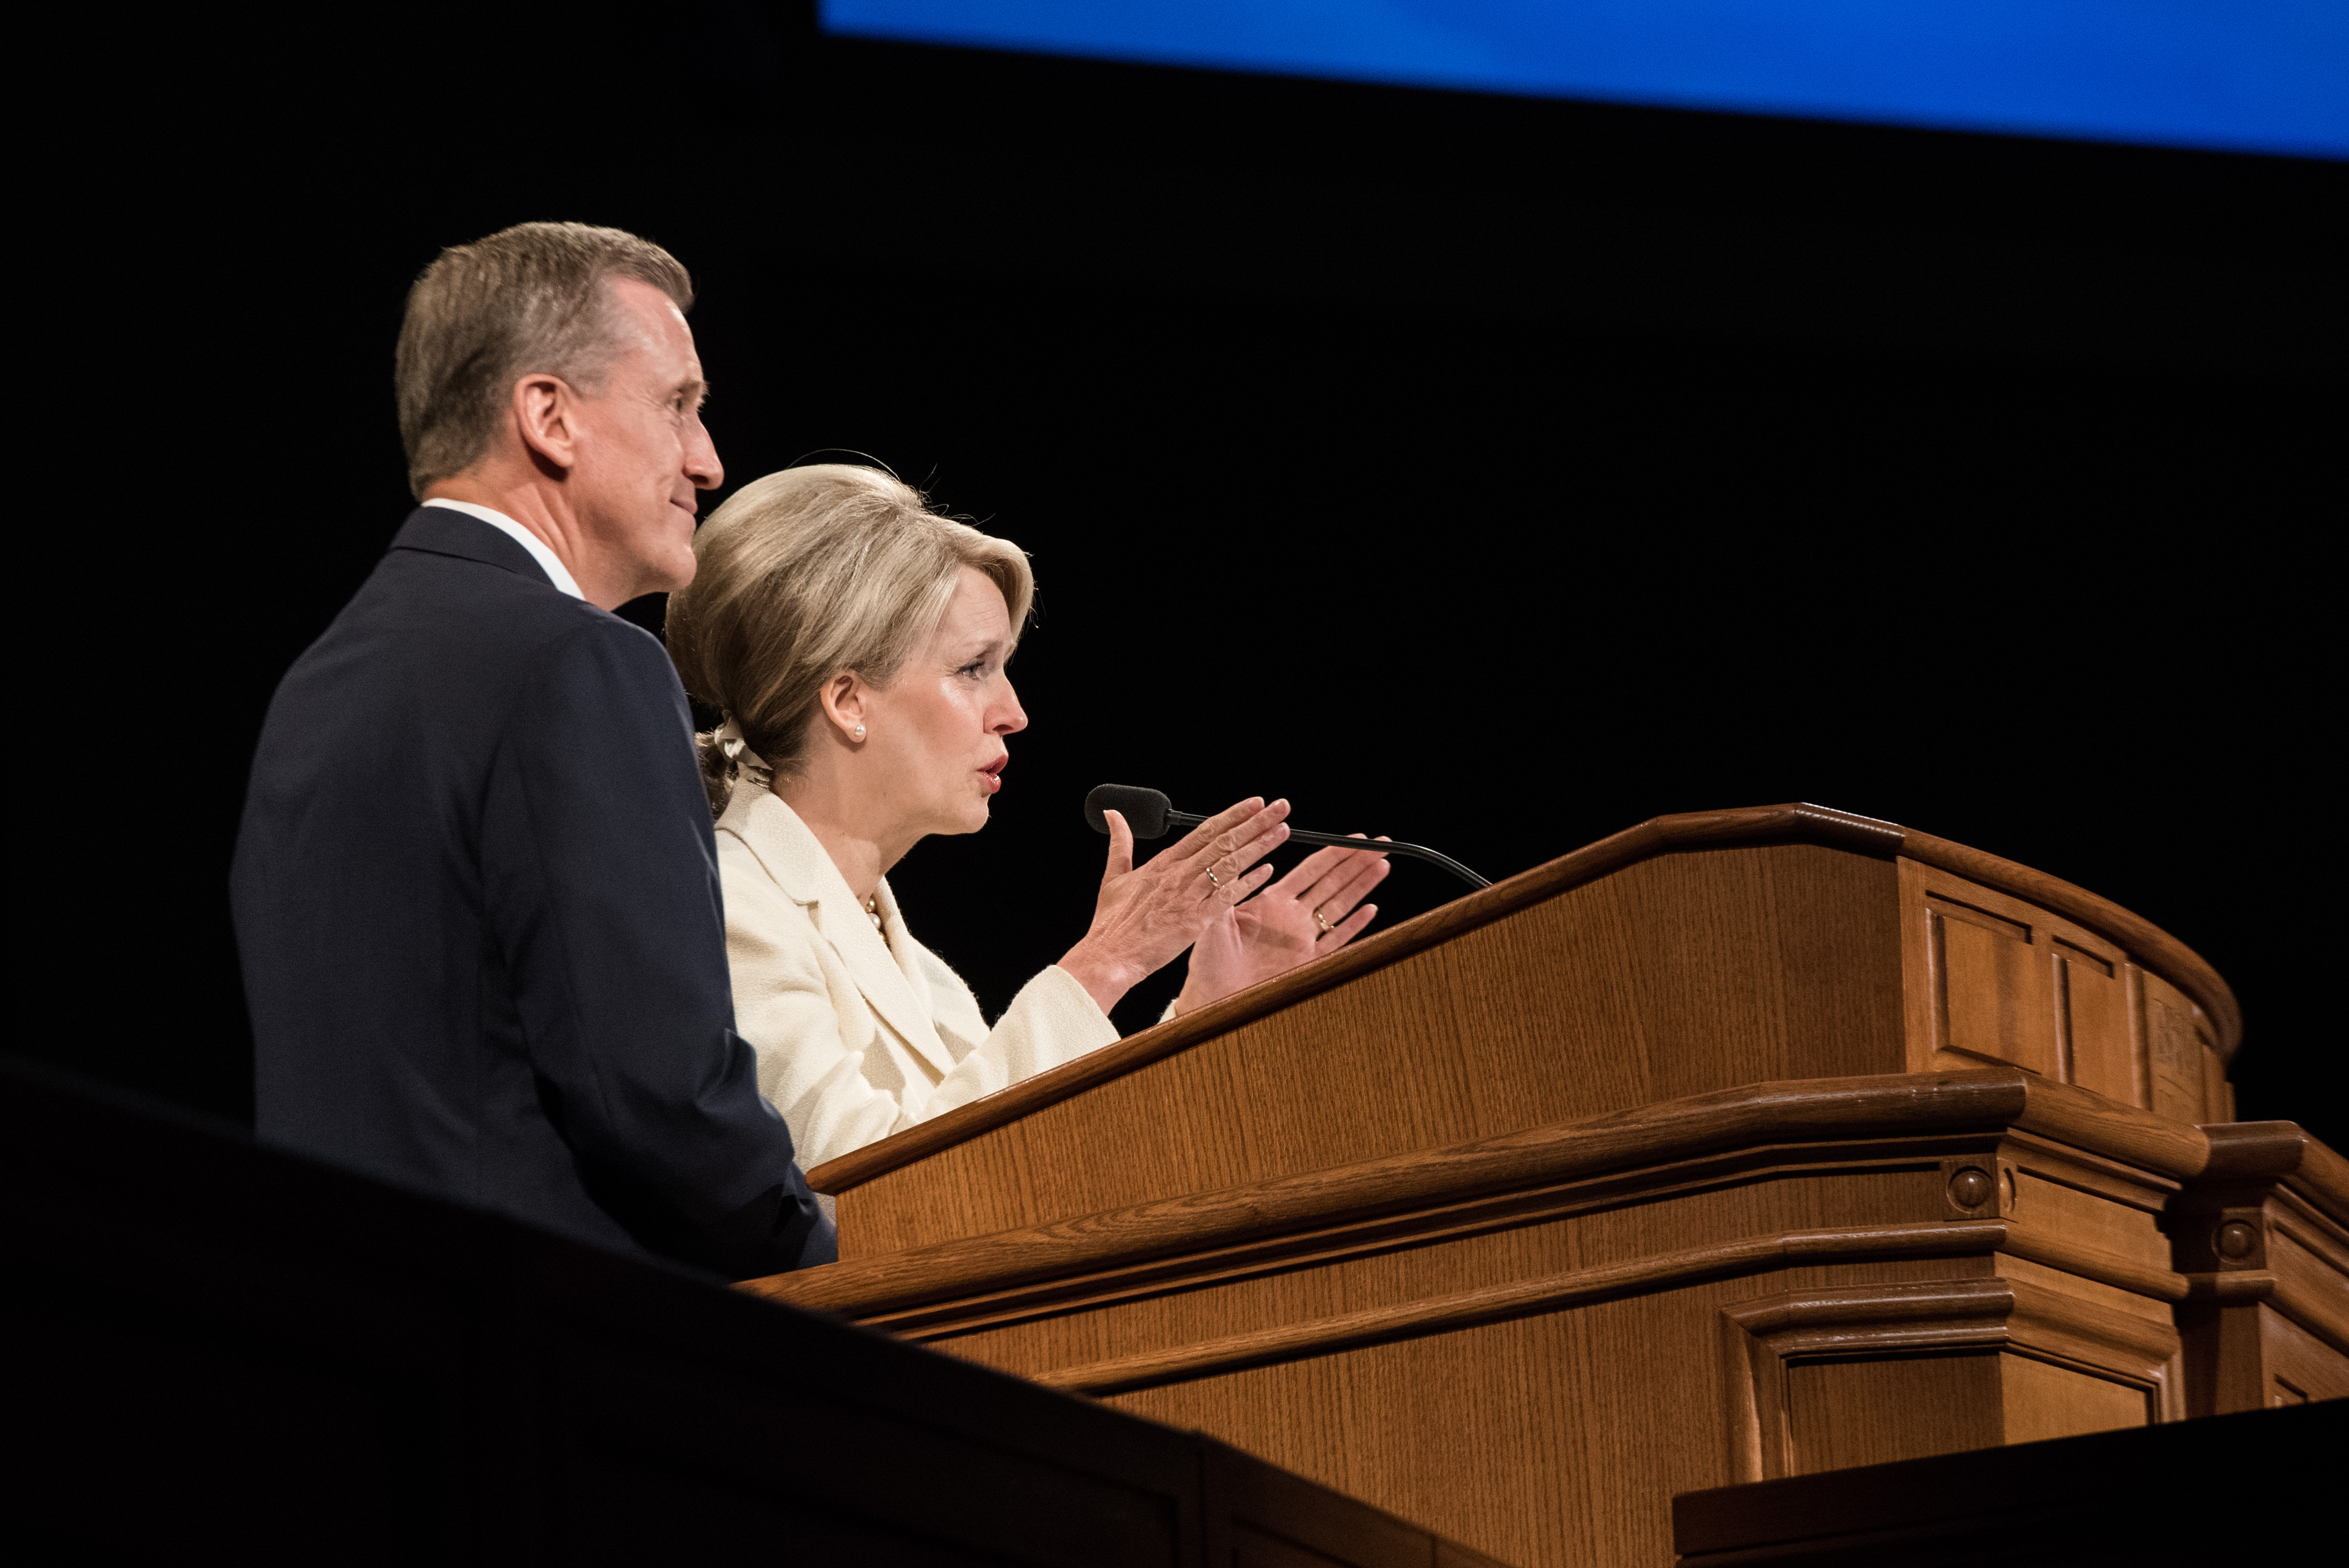 BYU-Idaho devotional guest speakers Elder R. Kevin and Sister Nancy Duncan address students on May 21, 2019.